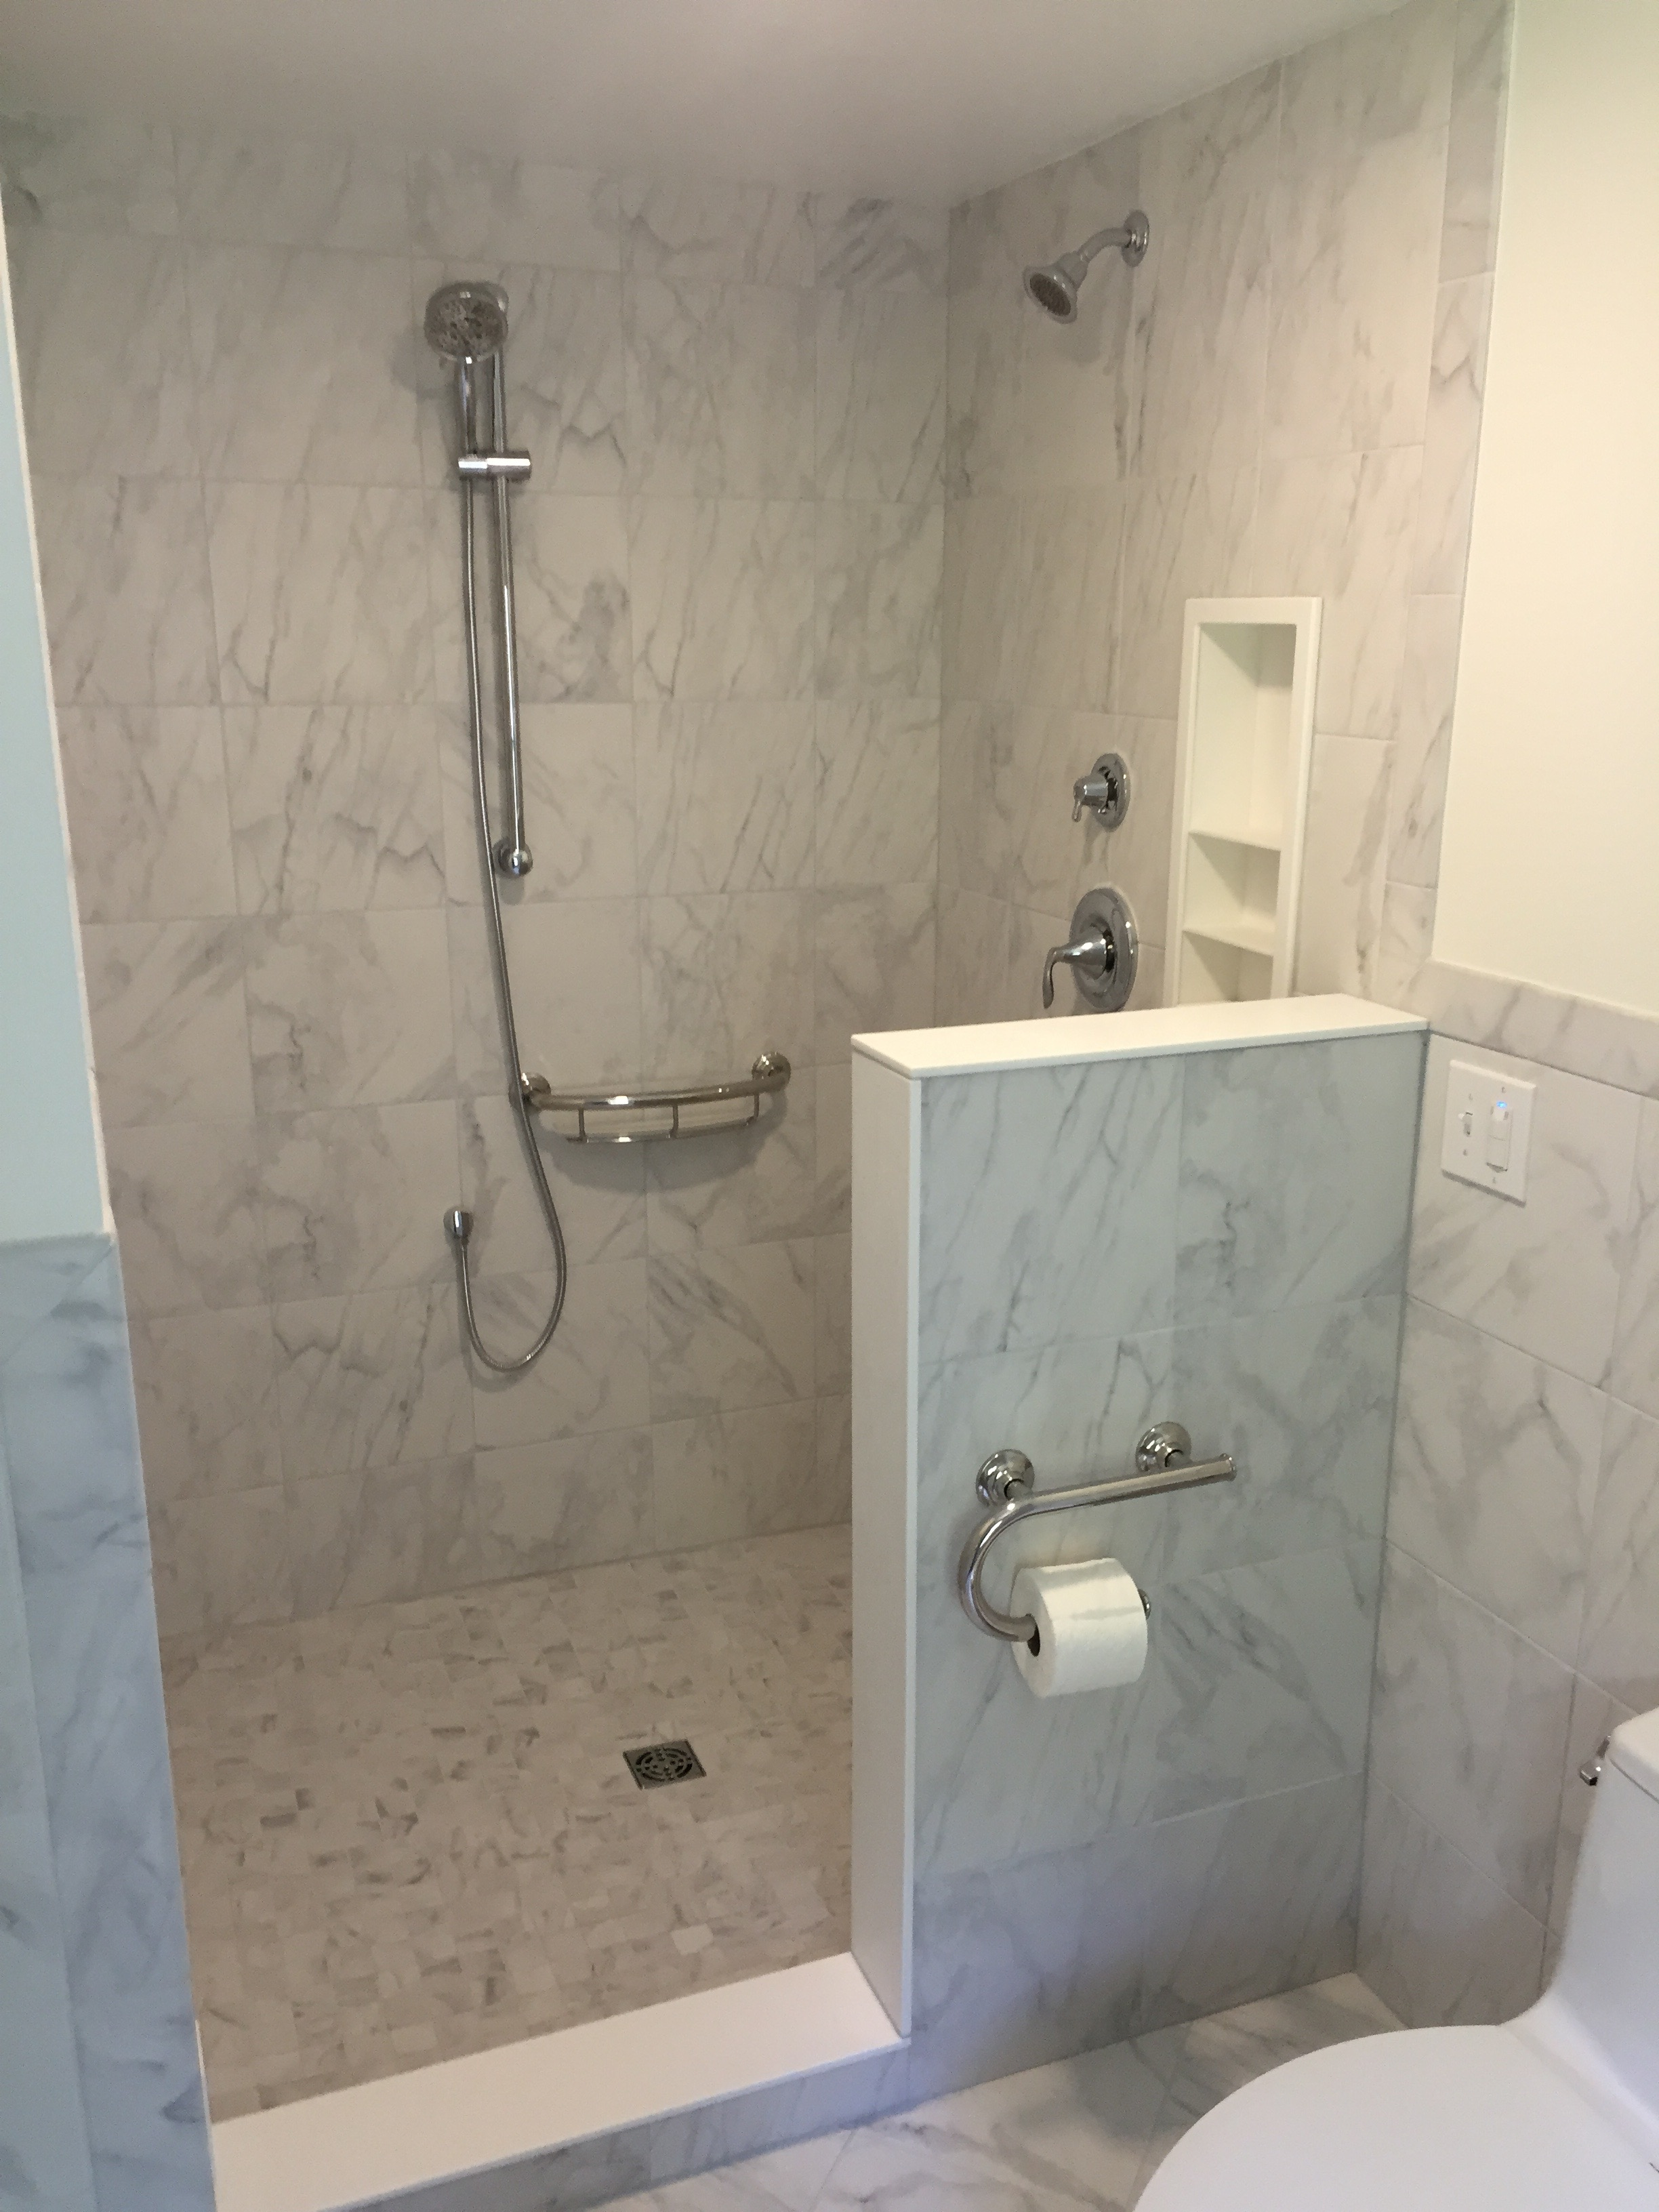 Shower Panels Instead Of Tiles Rebath Oversized Tile Wall